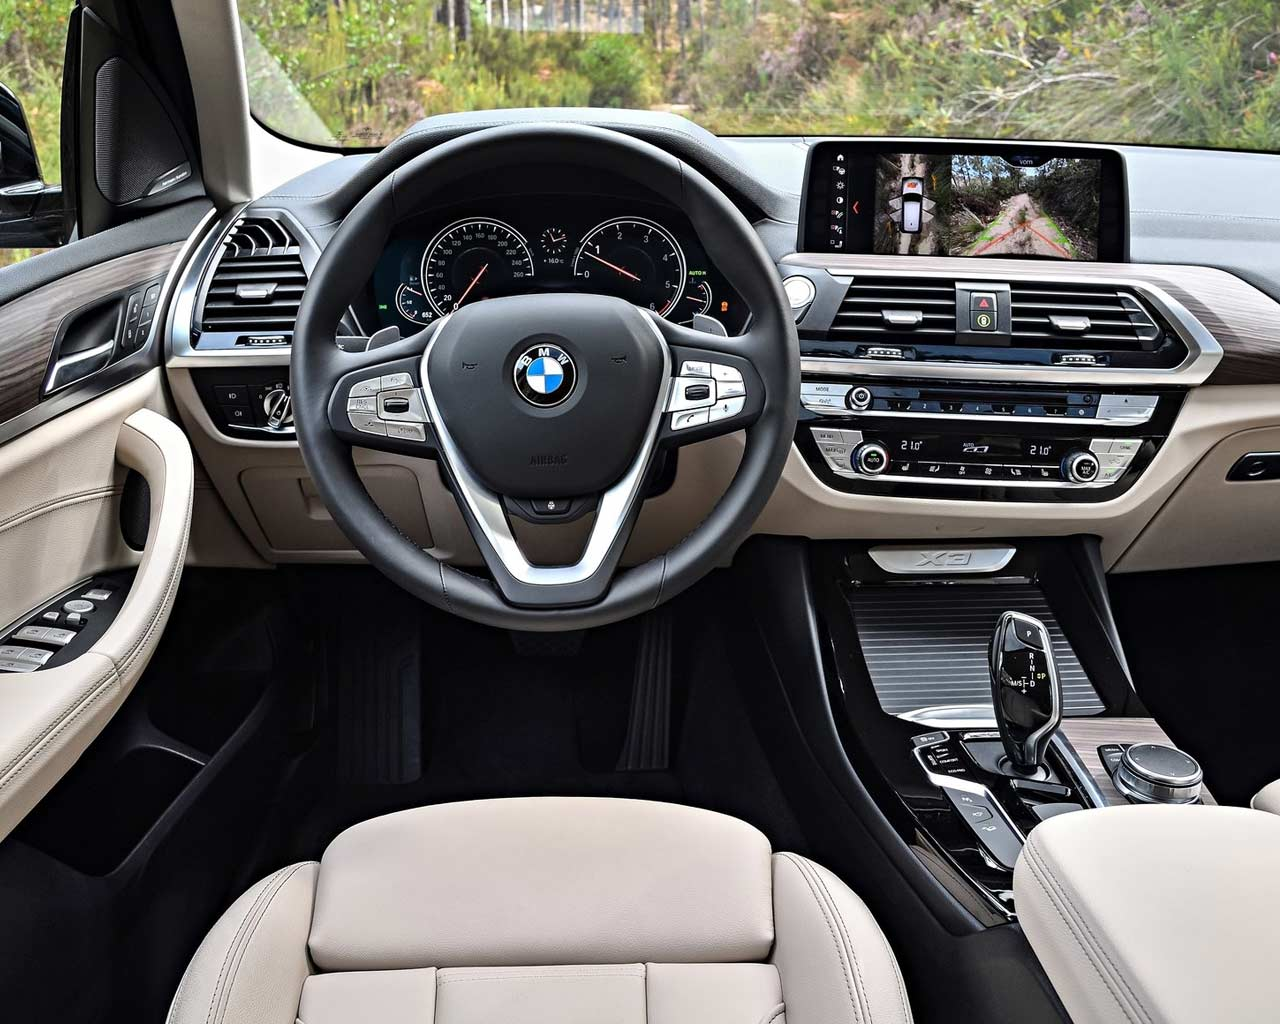 2018 bmw x3 priced from inr lakh in india autobics. Black Bedroom Furniture Sets. Home Design Ideas